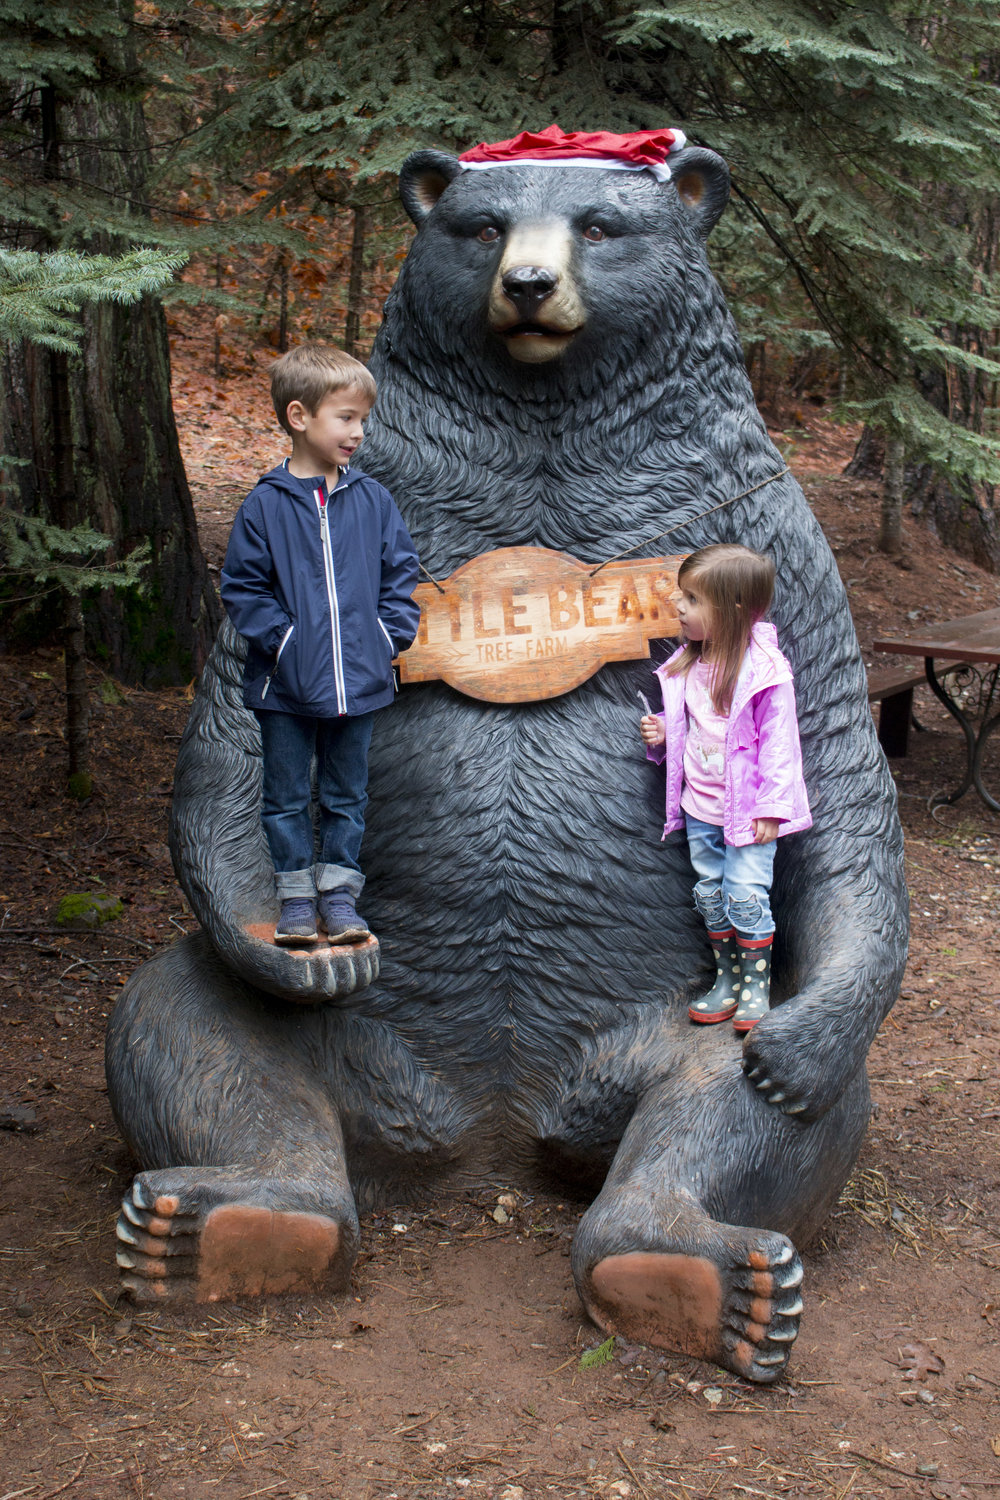 As a self proclaimed bear carving connoisseur I have to say this enormous well thought out design ranks pretty high on the list.